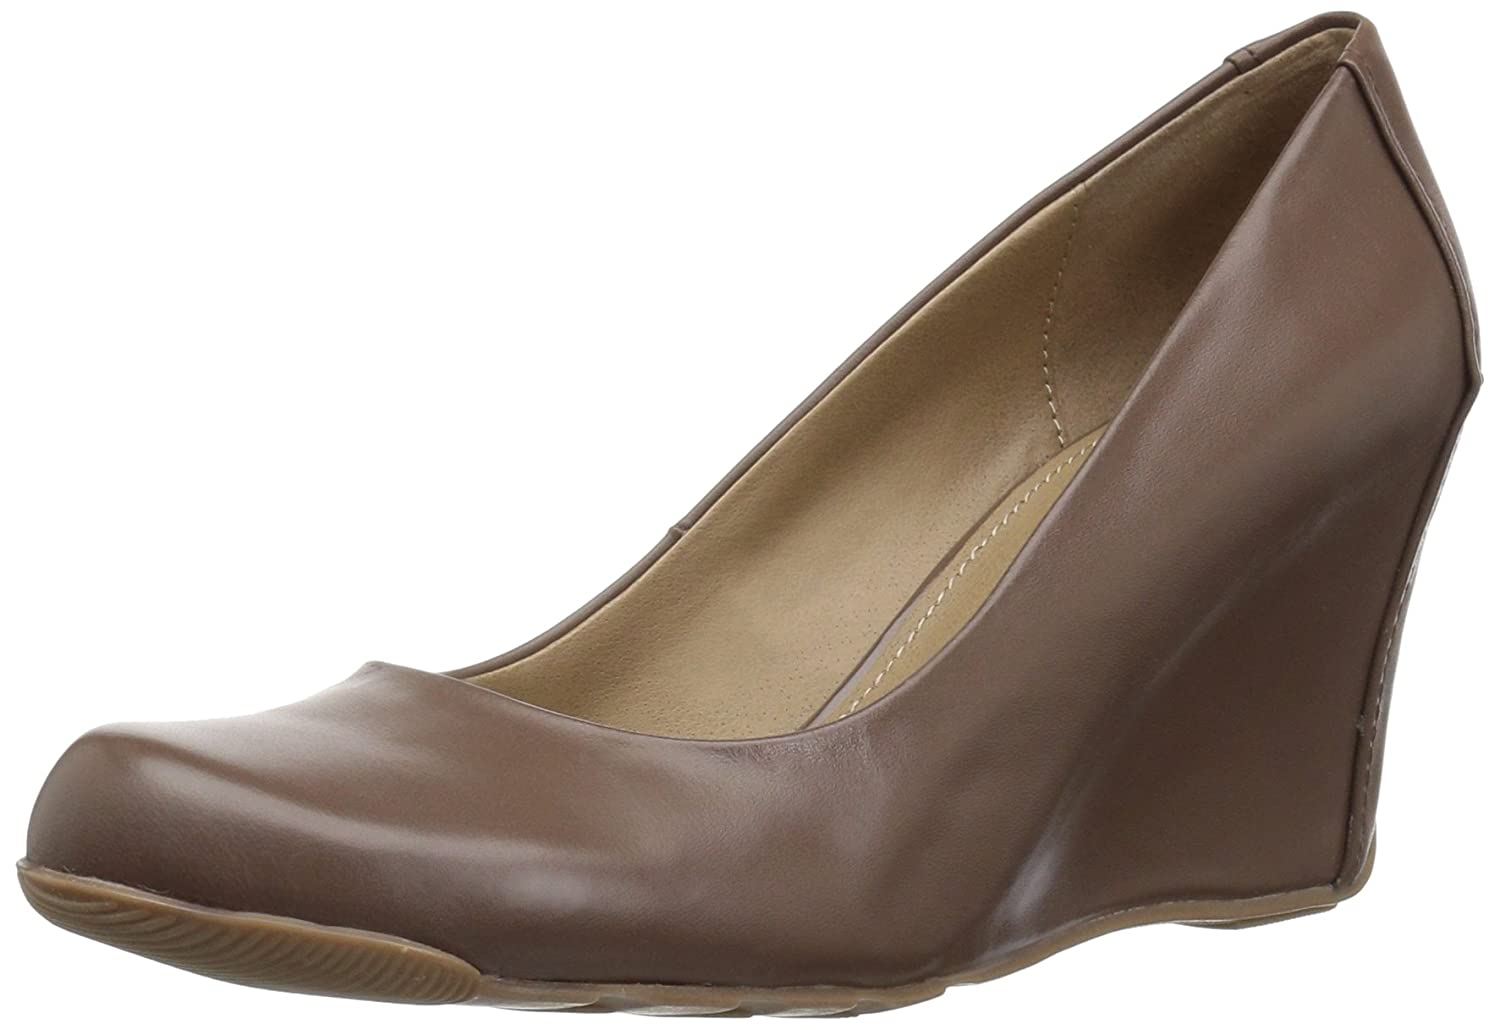 Kenneth Cole REACTION Women's 7 Did U Tell Wedge Pump B01G4HHHGW 9 B(M) US|Nut